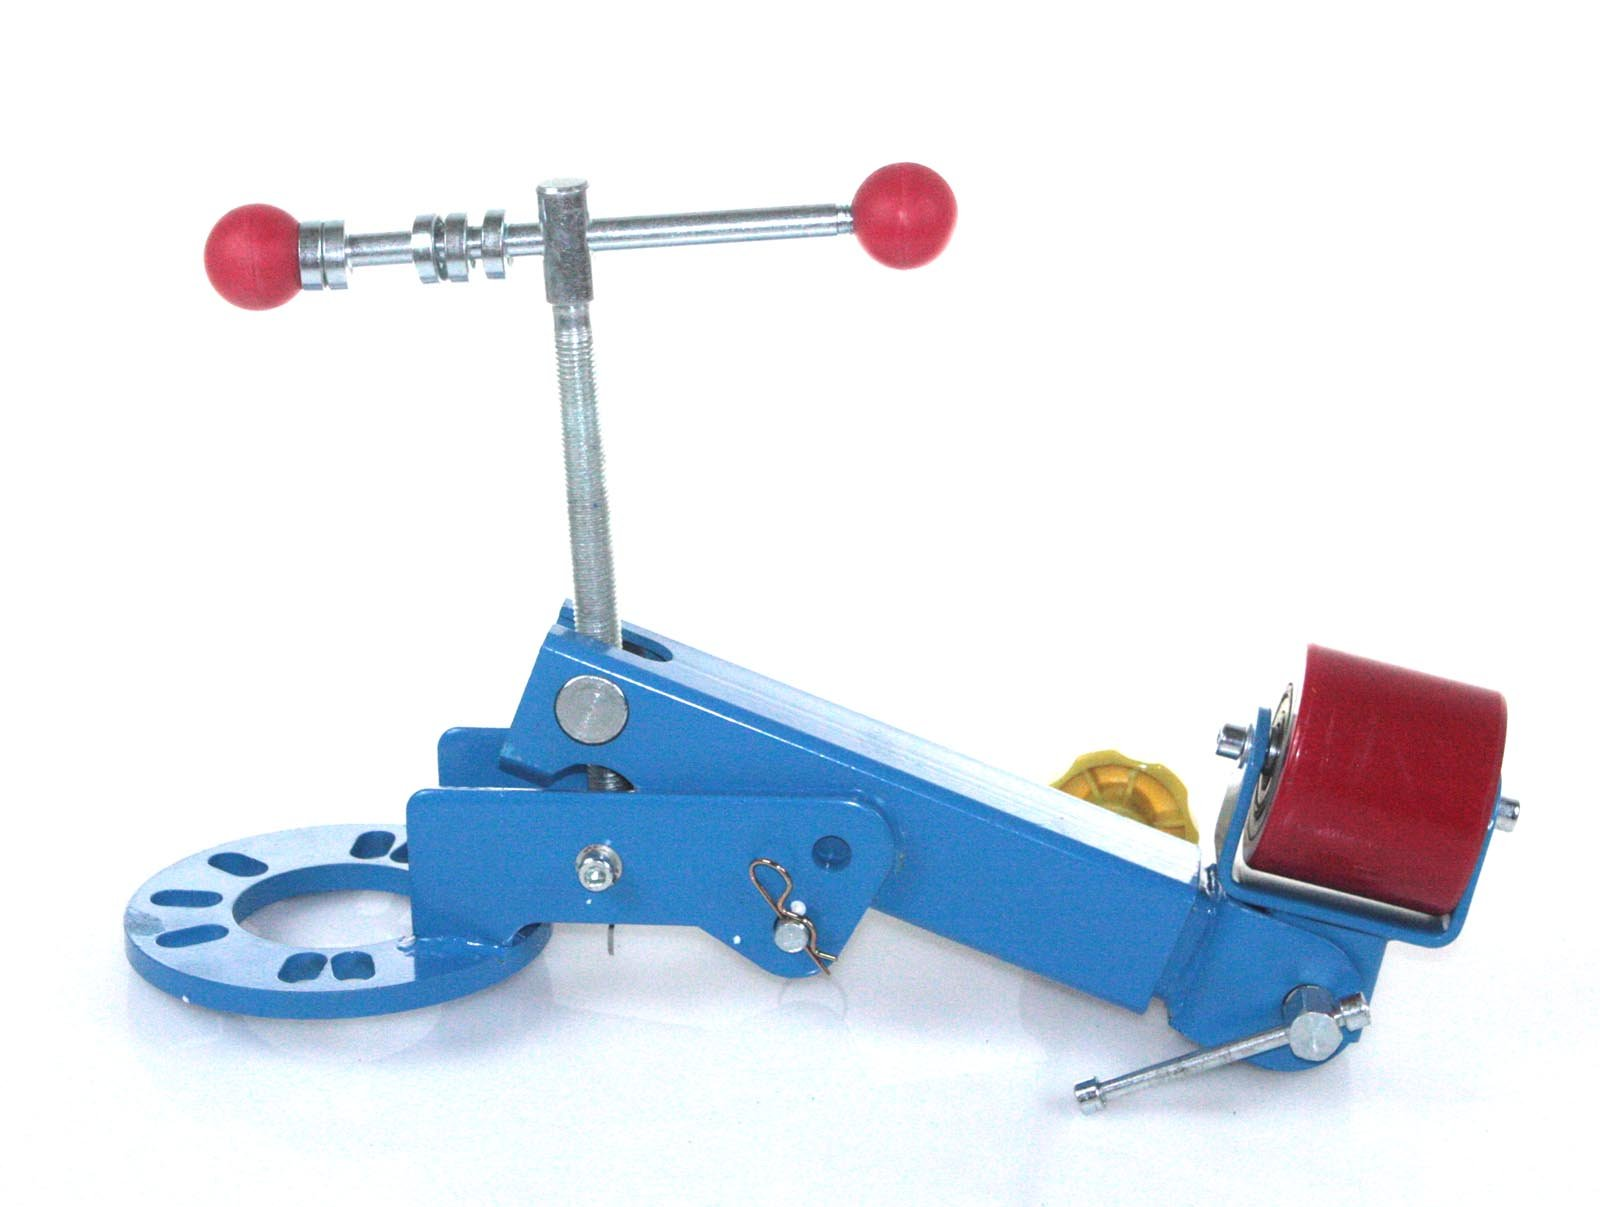 Jtc Fender Roller Tool Lip Rolling Extending Tools Auto Body Shop by Jtc (Image #2)